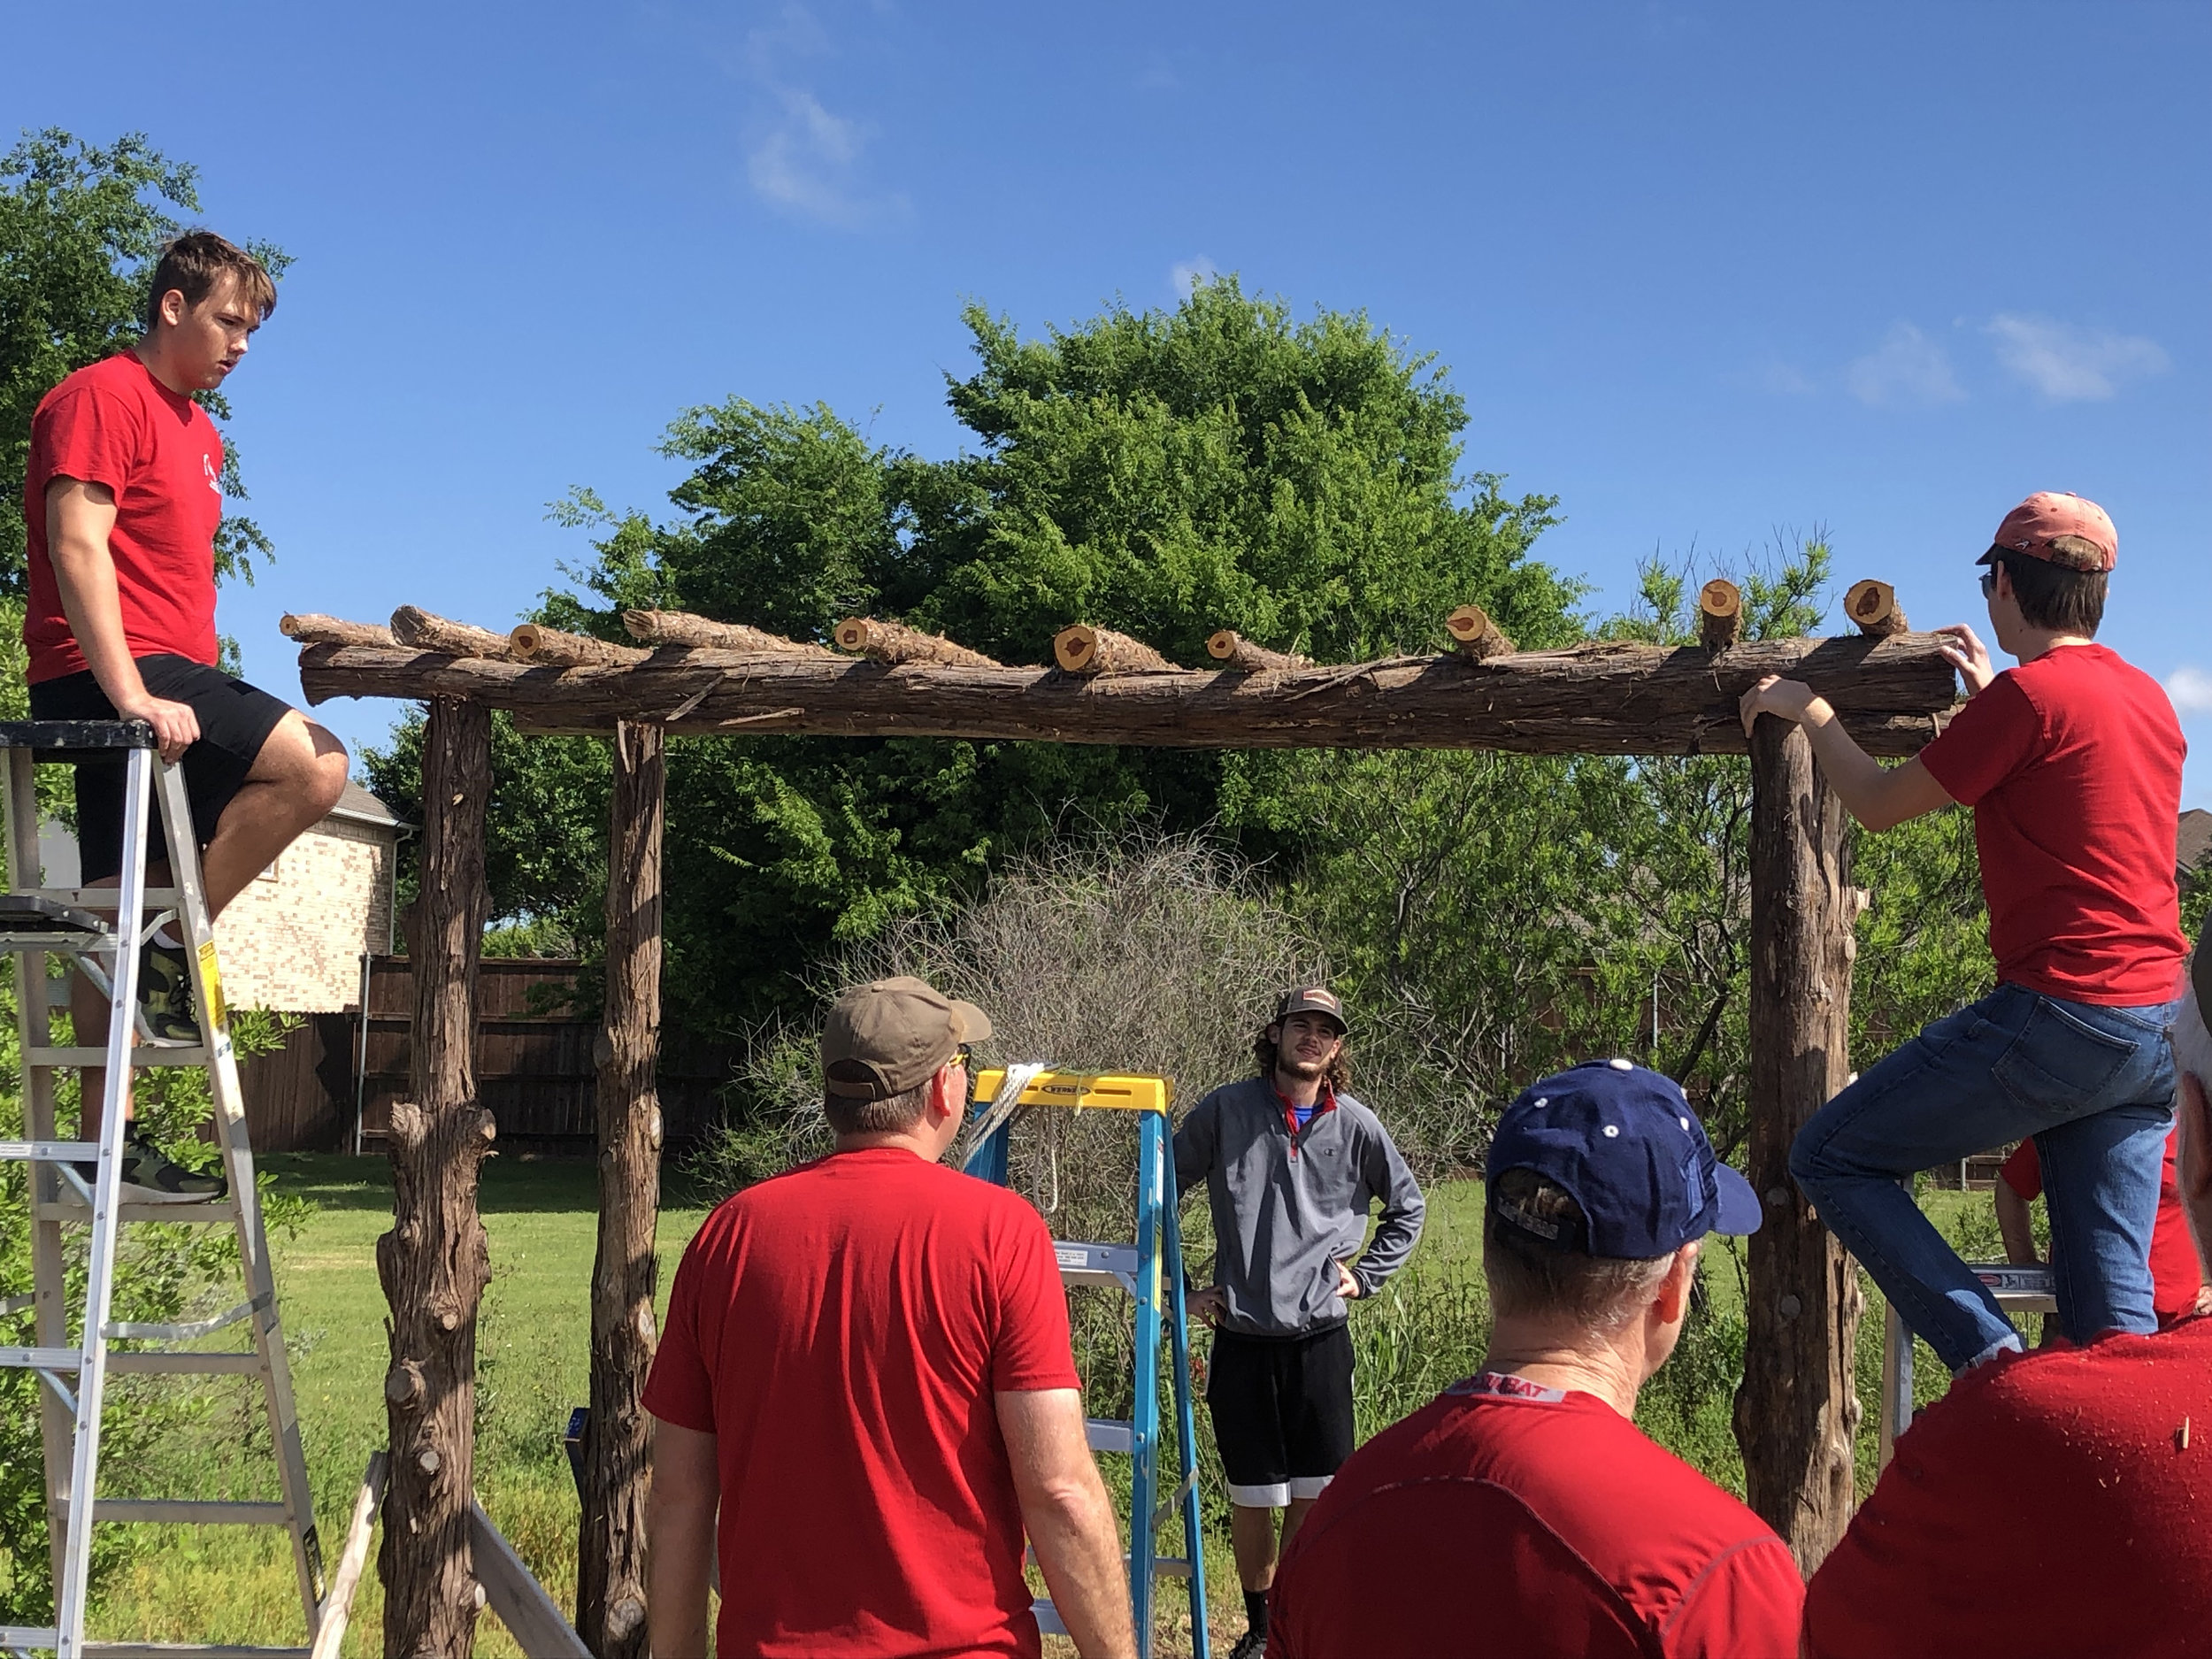 Dylan Spriggs worked on the arbor with members of Troop 295.